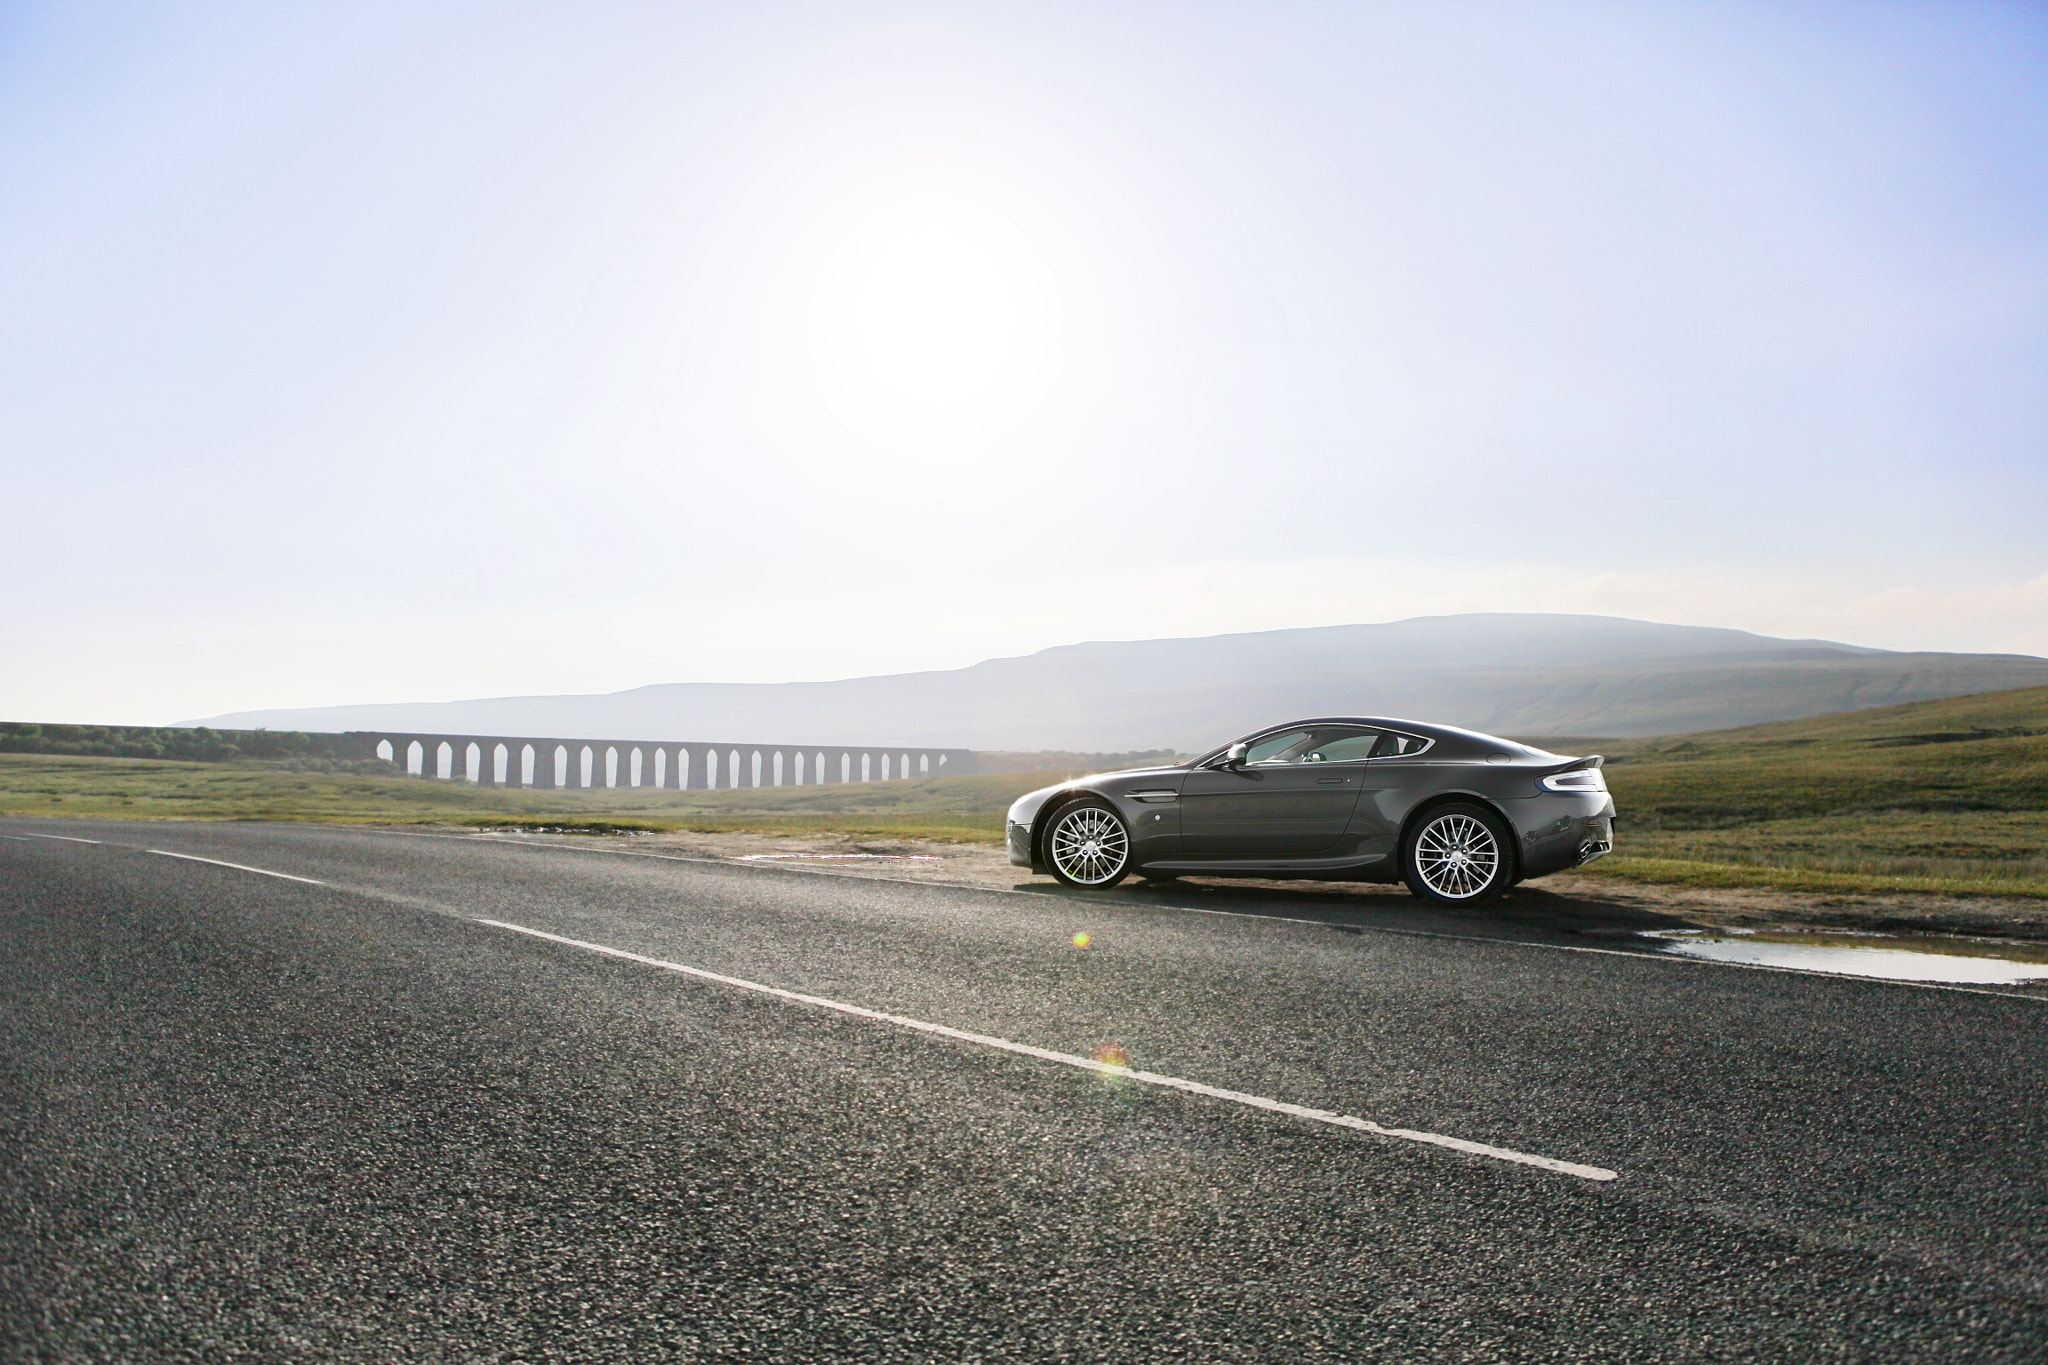 Photograph V8 Vantage - Ribblehead Viaduct by Martyn Lewis on 500px